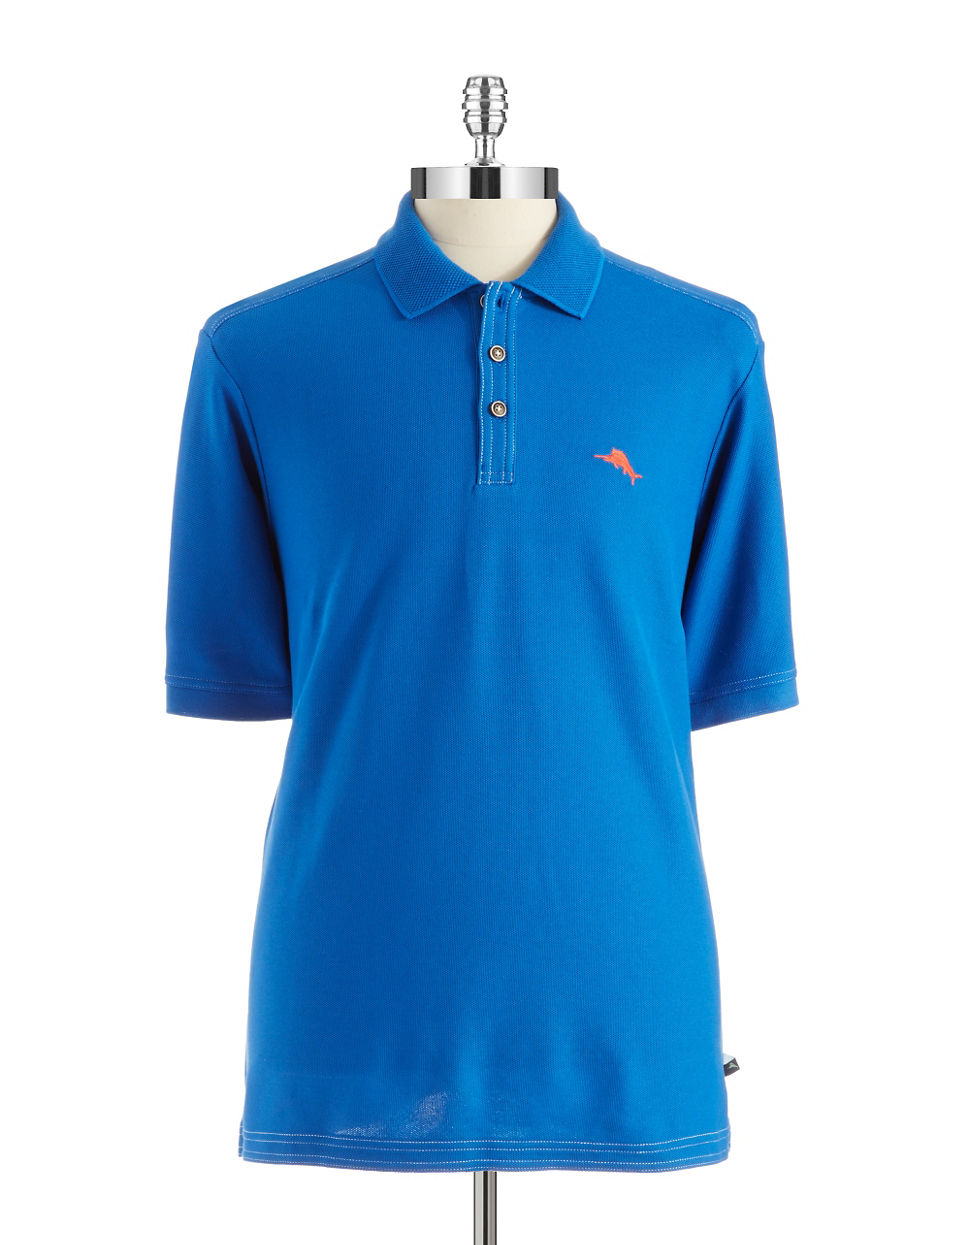 Lyst tommy bahama emfielder polo shirt in blue for men for Tommy bahama christmas shirt 2014